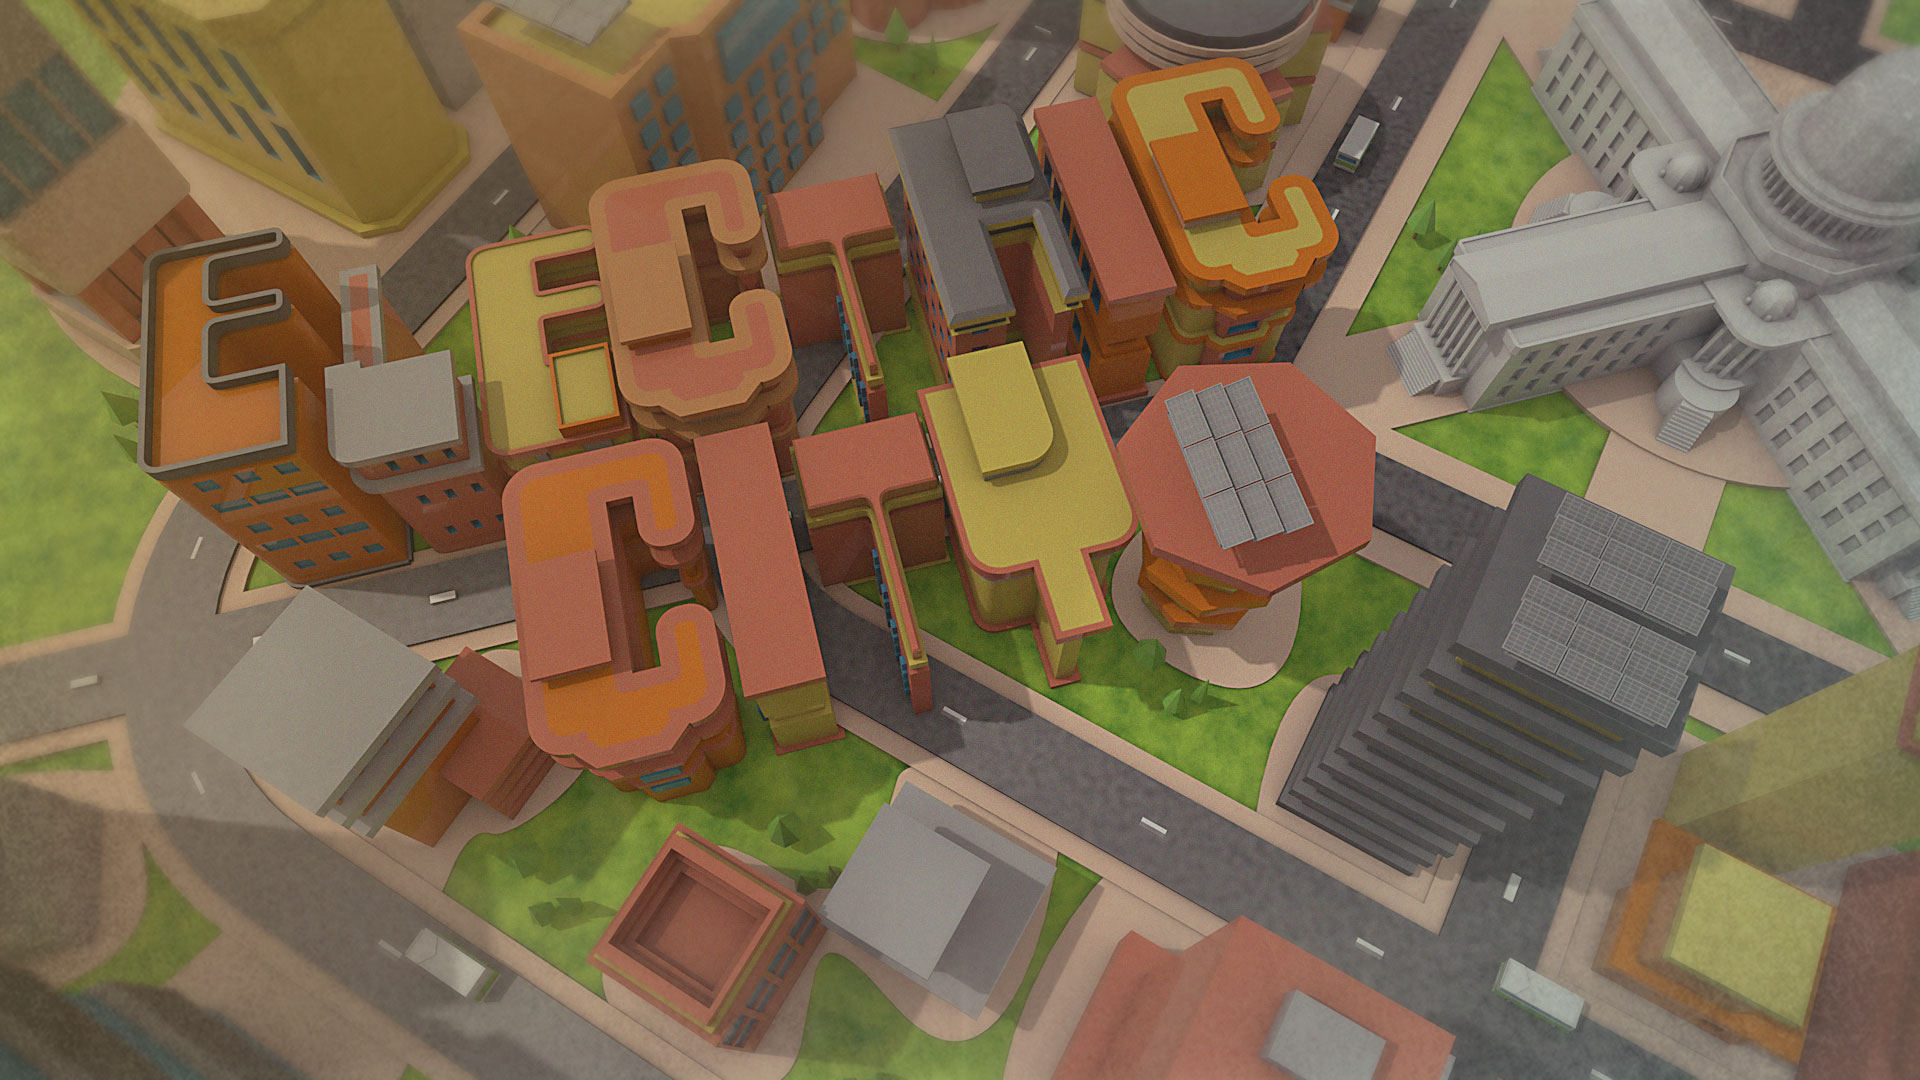 Electric City wallpaper